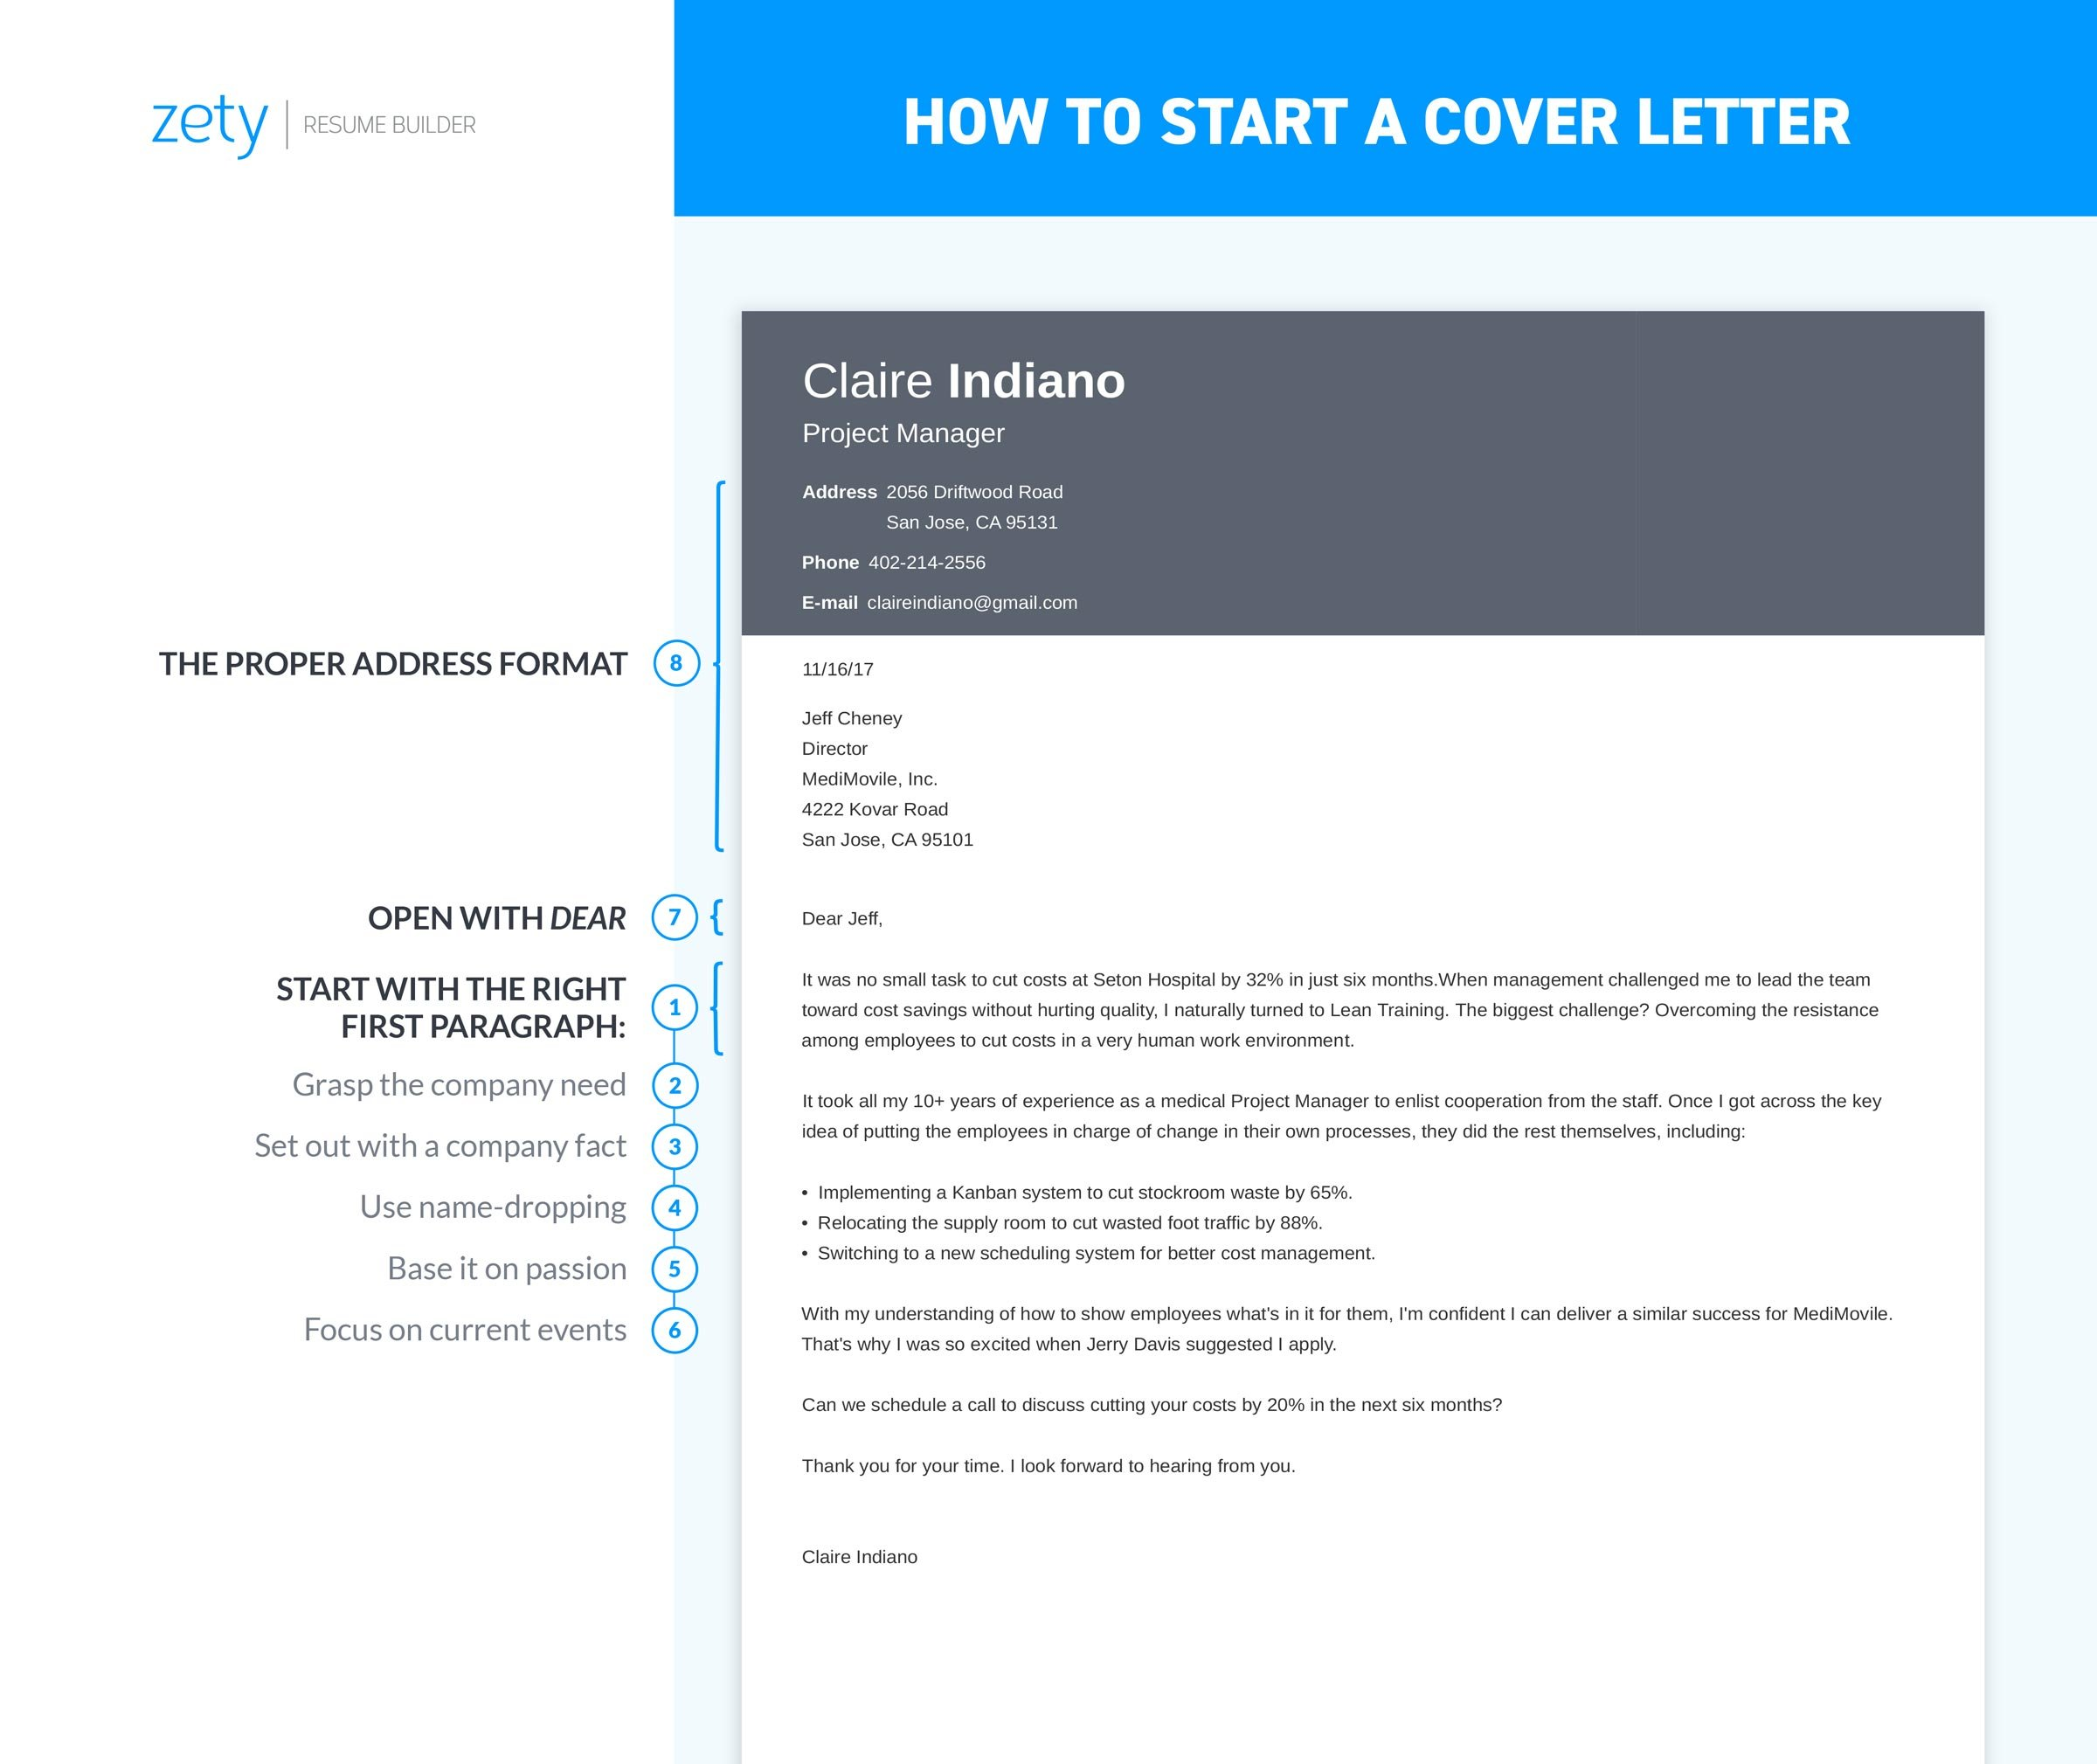 Nice Infographic On How To Start A Cover Letter  How To Begin A Cover Letter